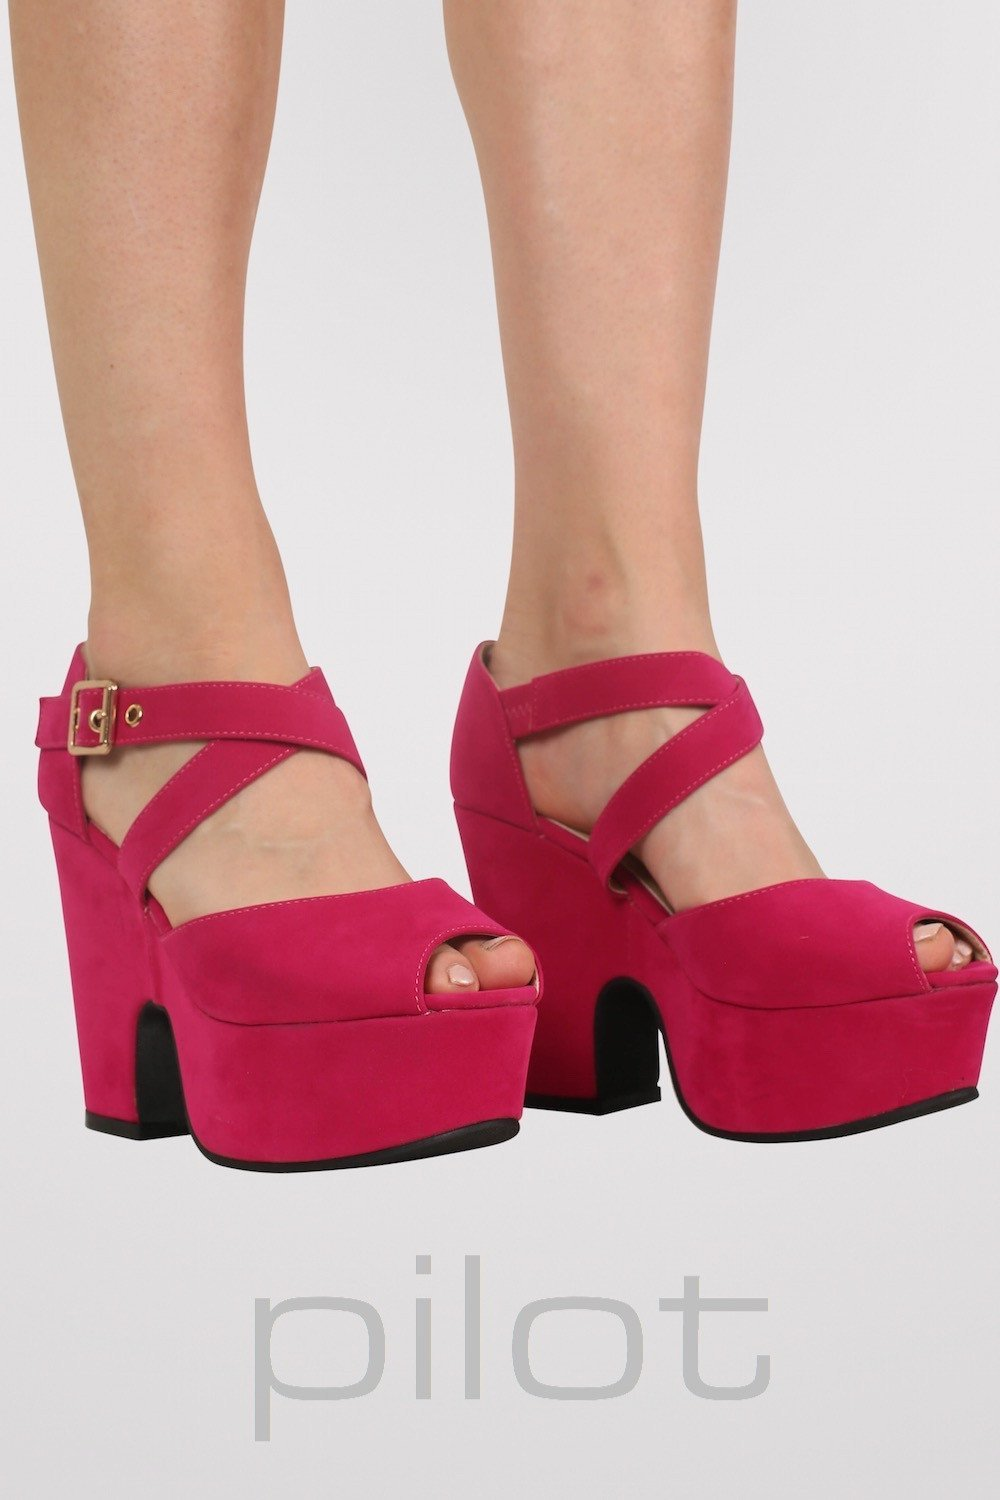 Cross Strap Low Demi Wedge Shoes in Pink 0